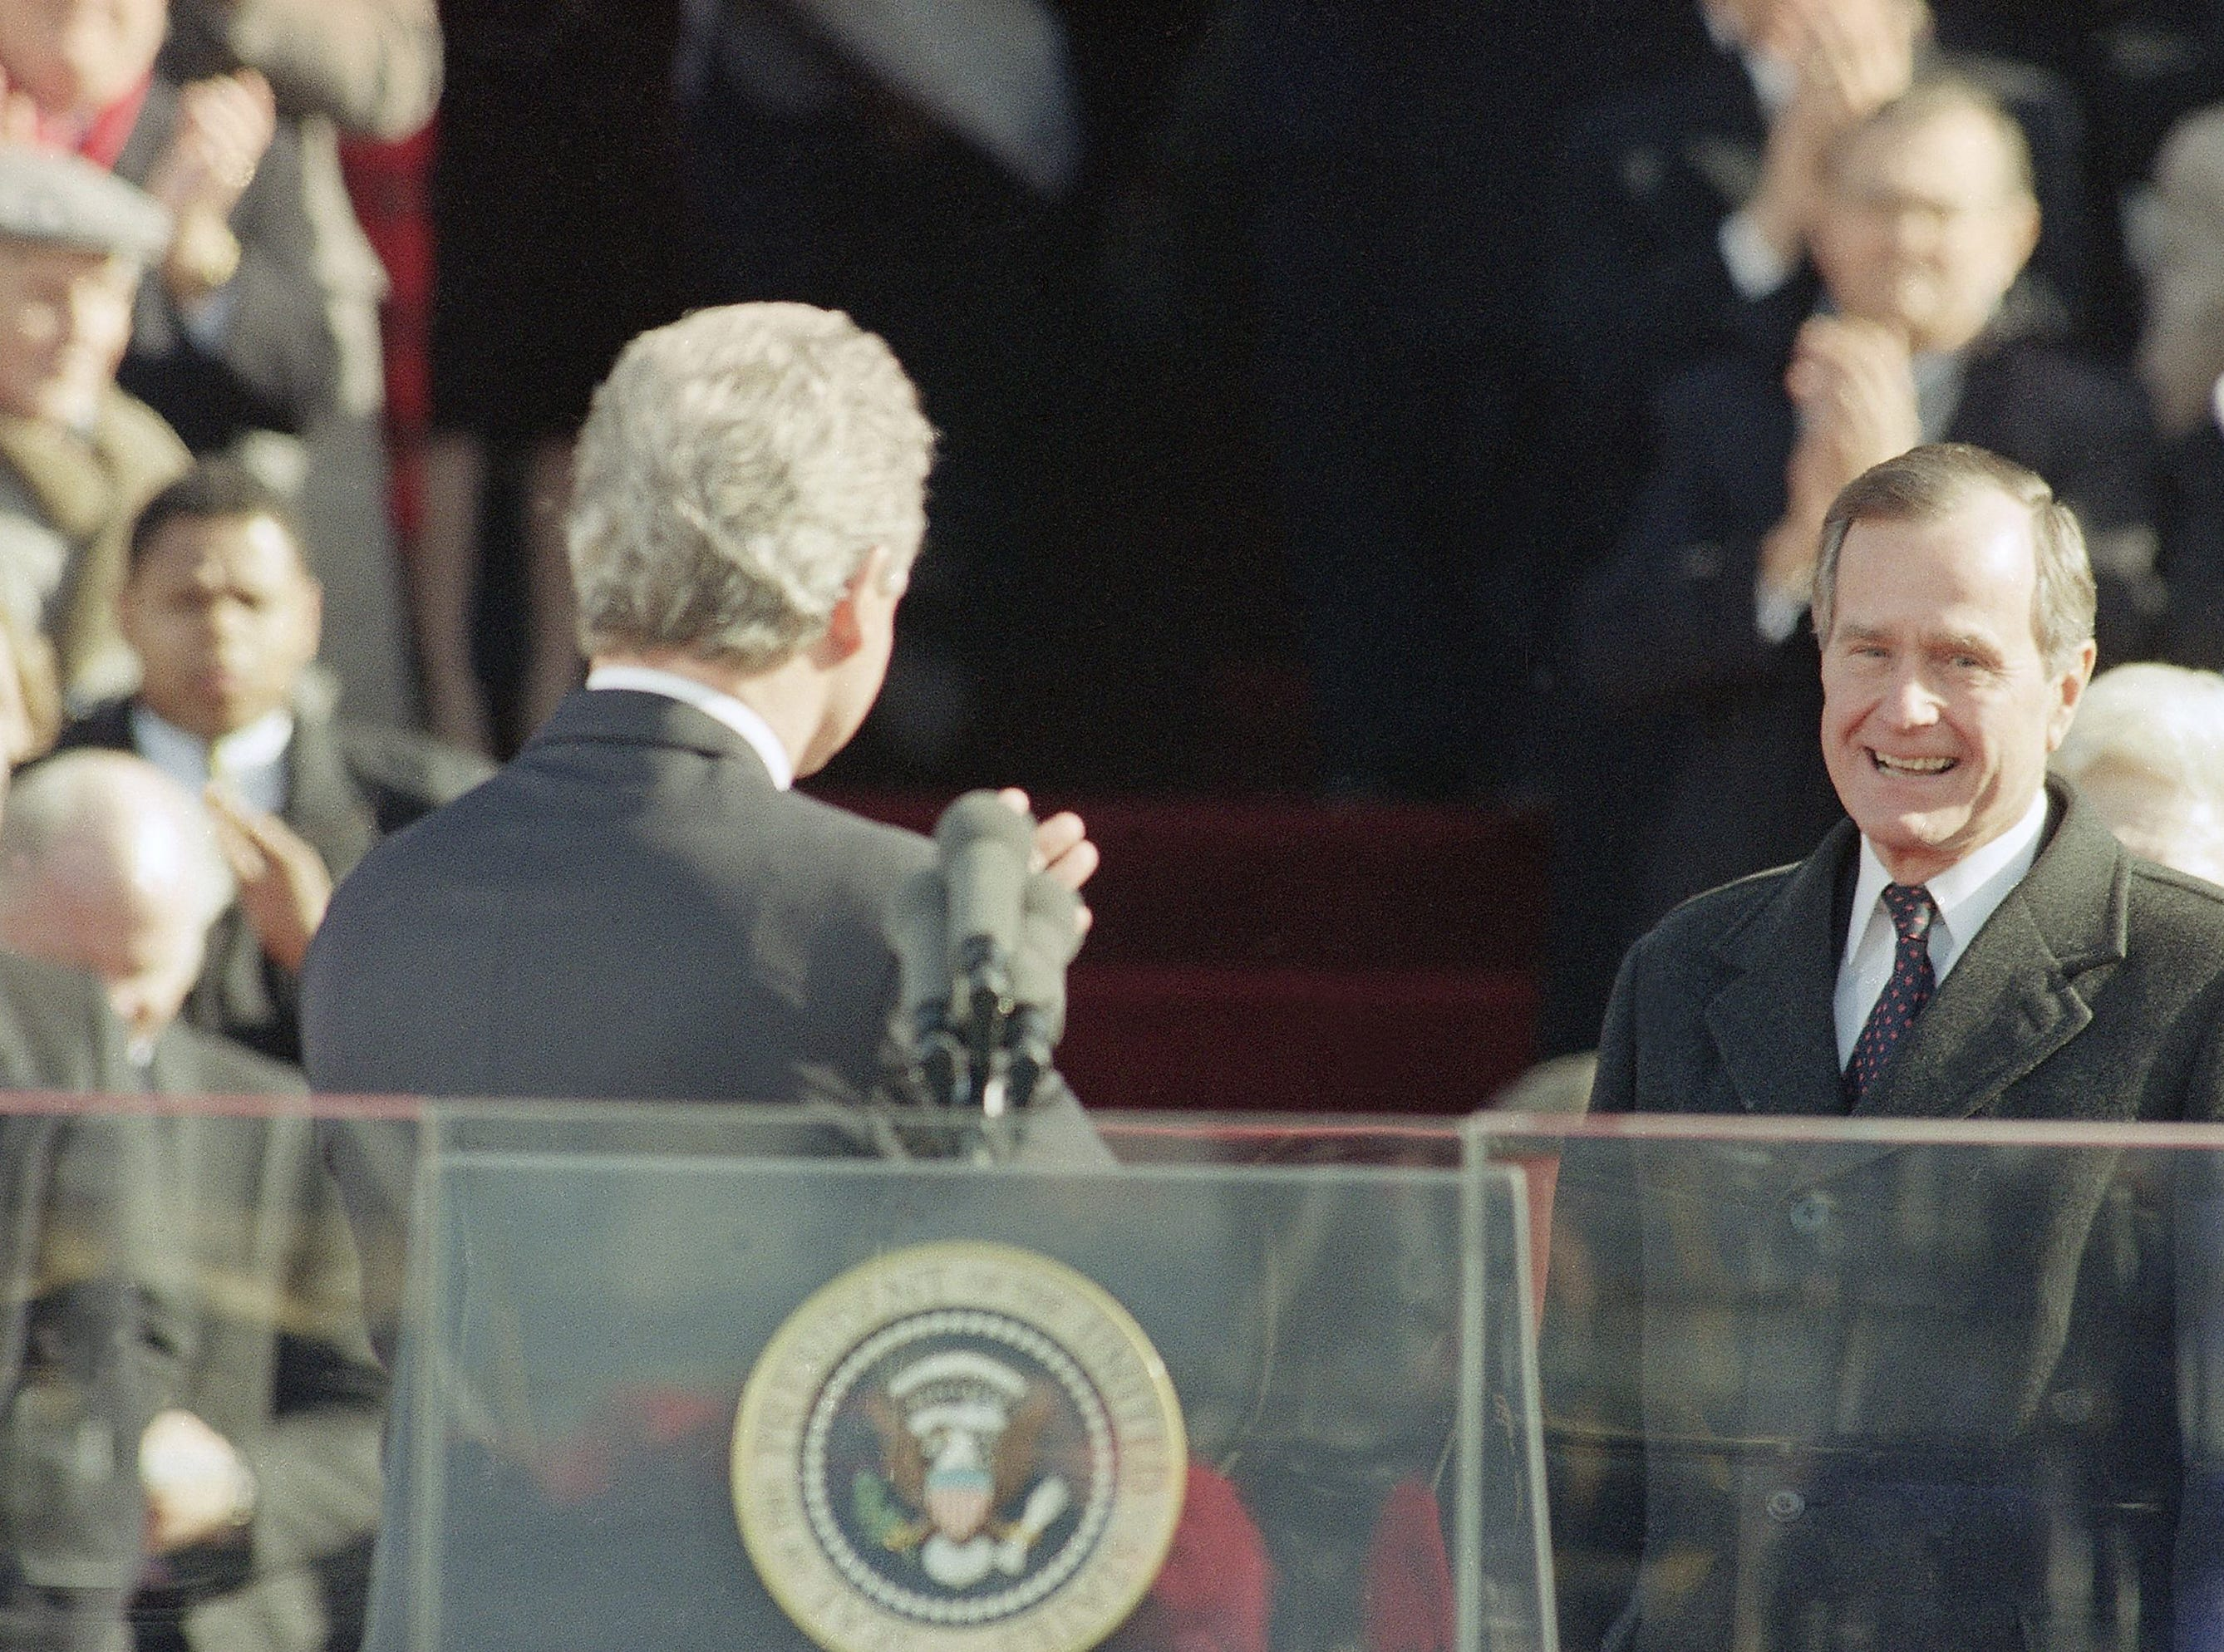 Pres. Bill Clinton, left, gestures toward former Pres. George H. W. Bush after giving his inaugural speech on Capitol Hill, Wednesday, Jan. 21, 1993, Washington, Washington, D.C. (AP Photo/Ron Edmonds)